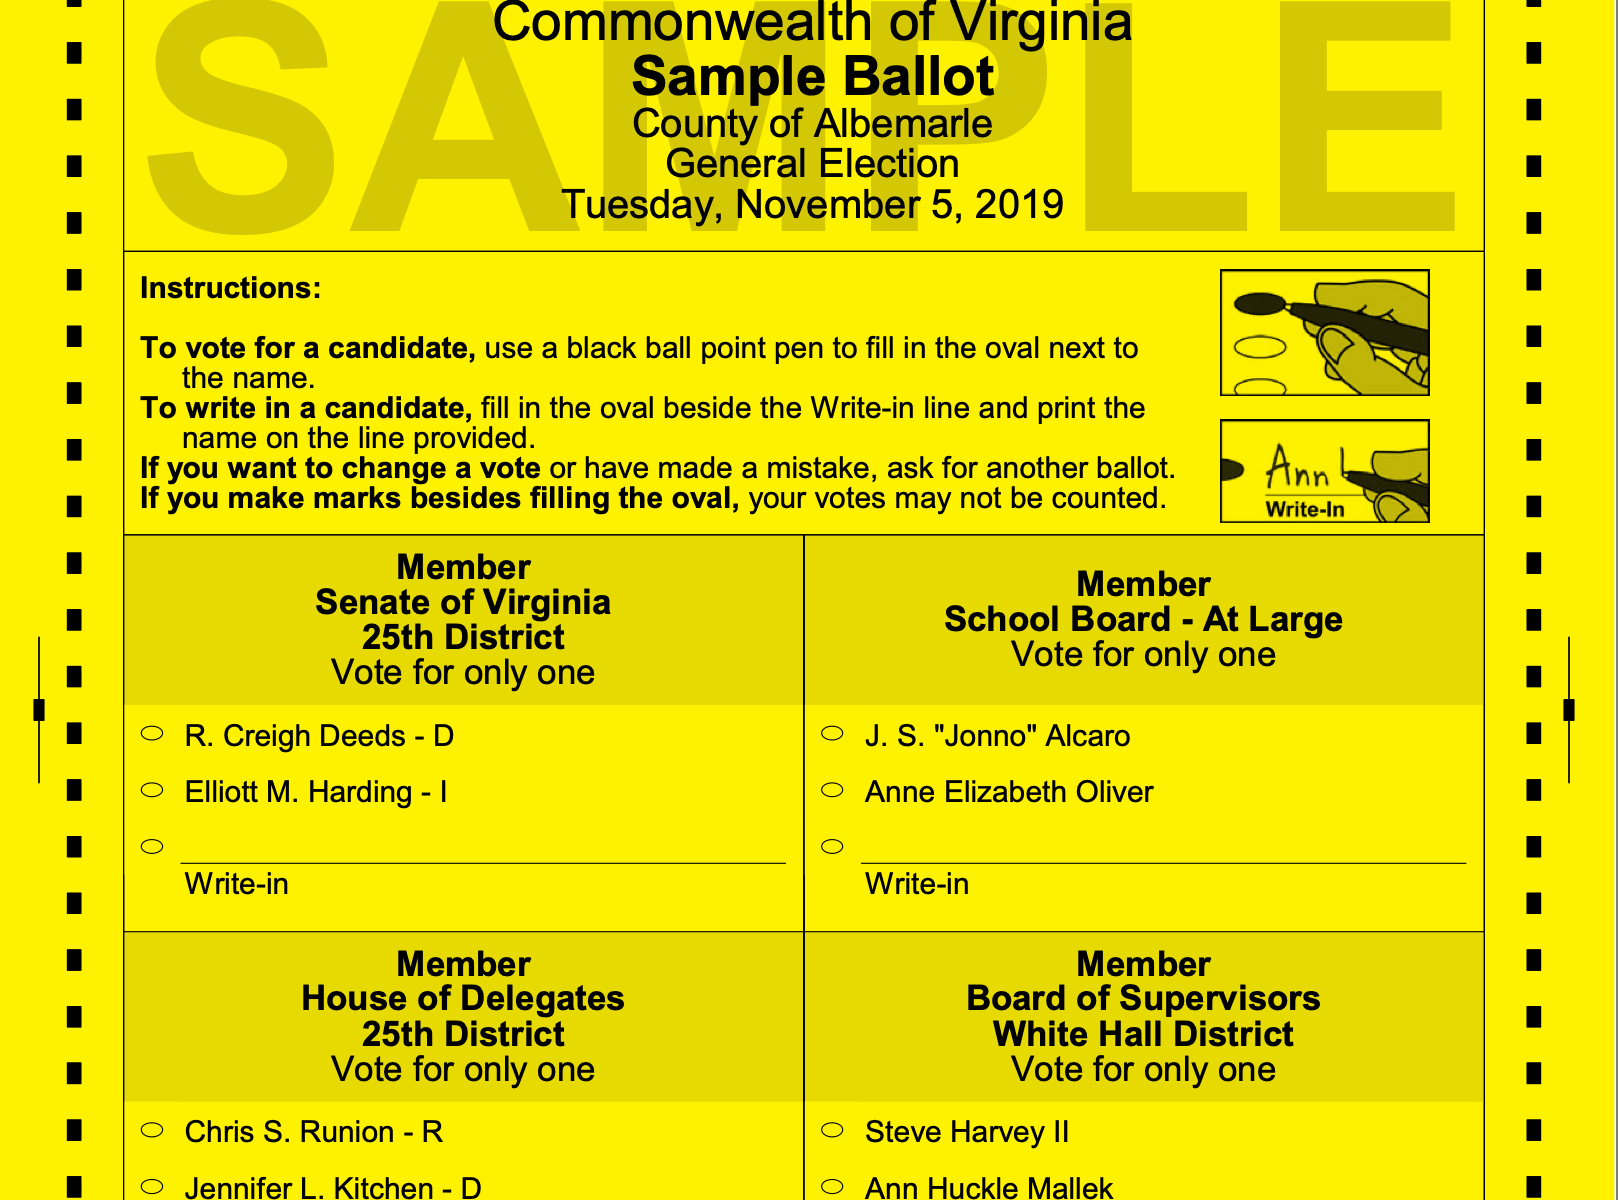 Sample Ballot -5 November 2019